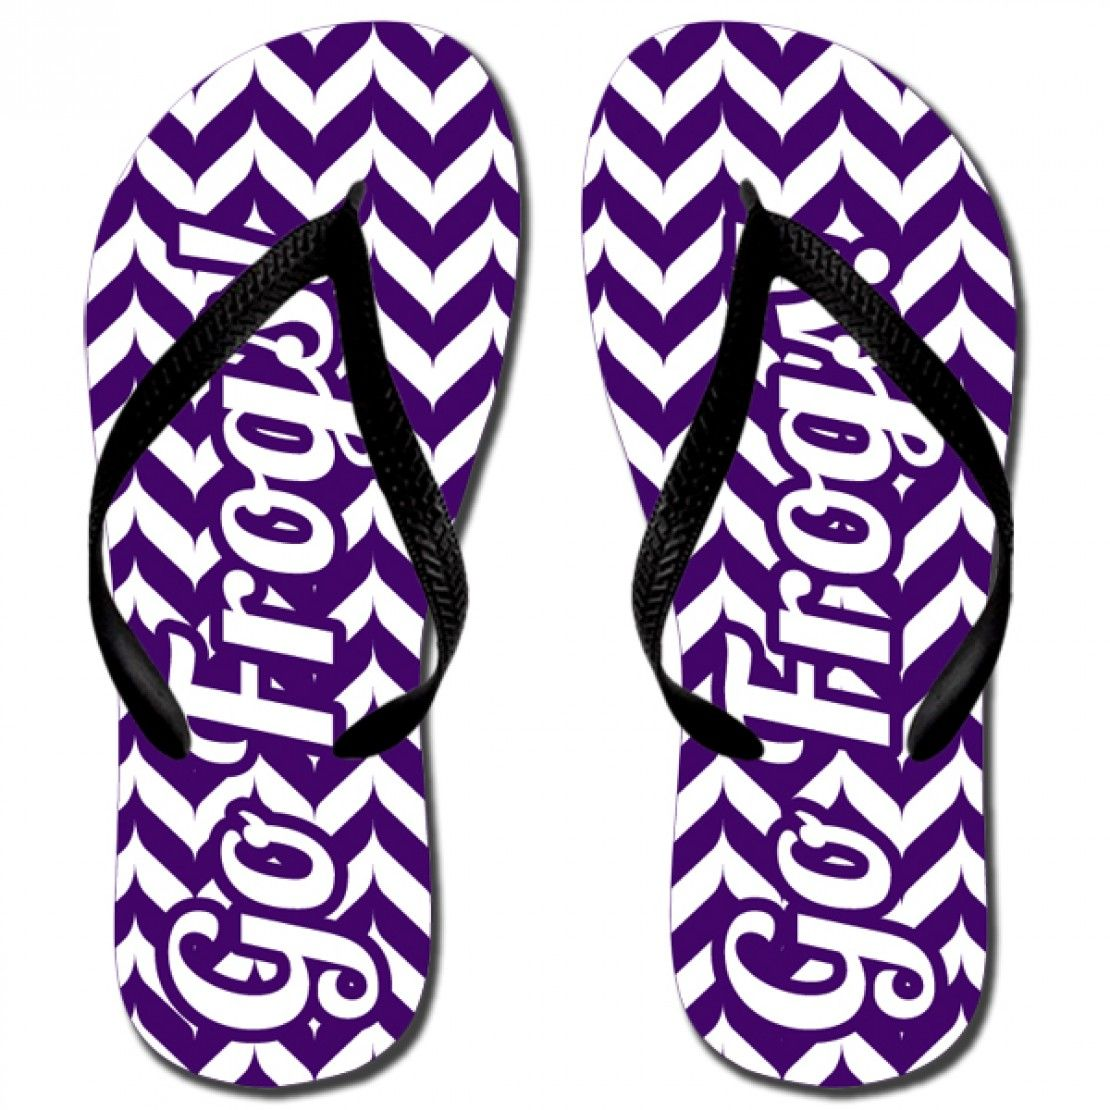 Katydid Go Frogs Fashion Women's Flip Flop  Designed by Katydid  flip flops are unisex sizing.  please note that women's will run wide. sizes :  XS (Women's 5-6)  S (Women's 7-8)  M (Women's 9-10)  L (Women's 11-12)  rubber straps and sole